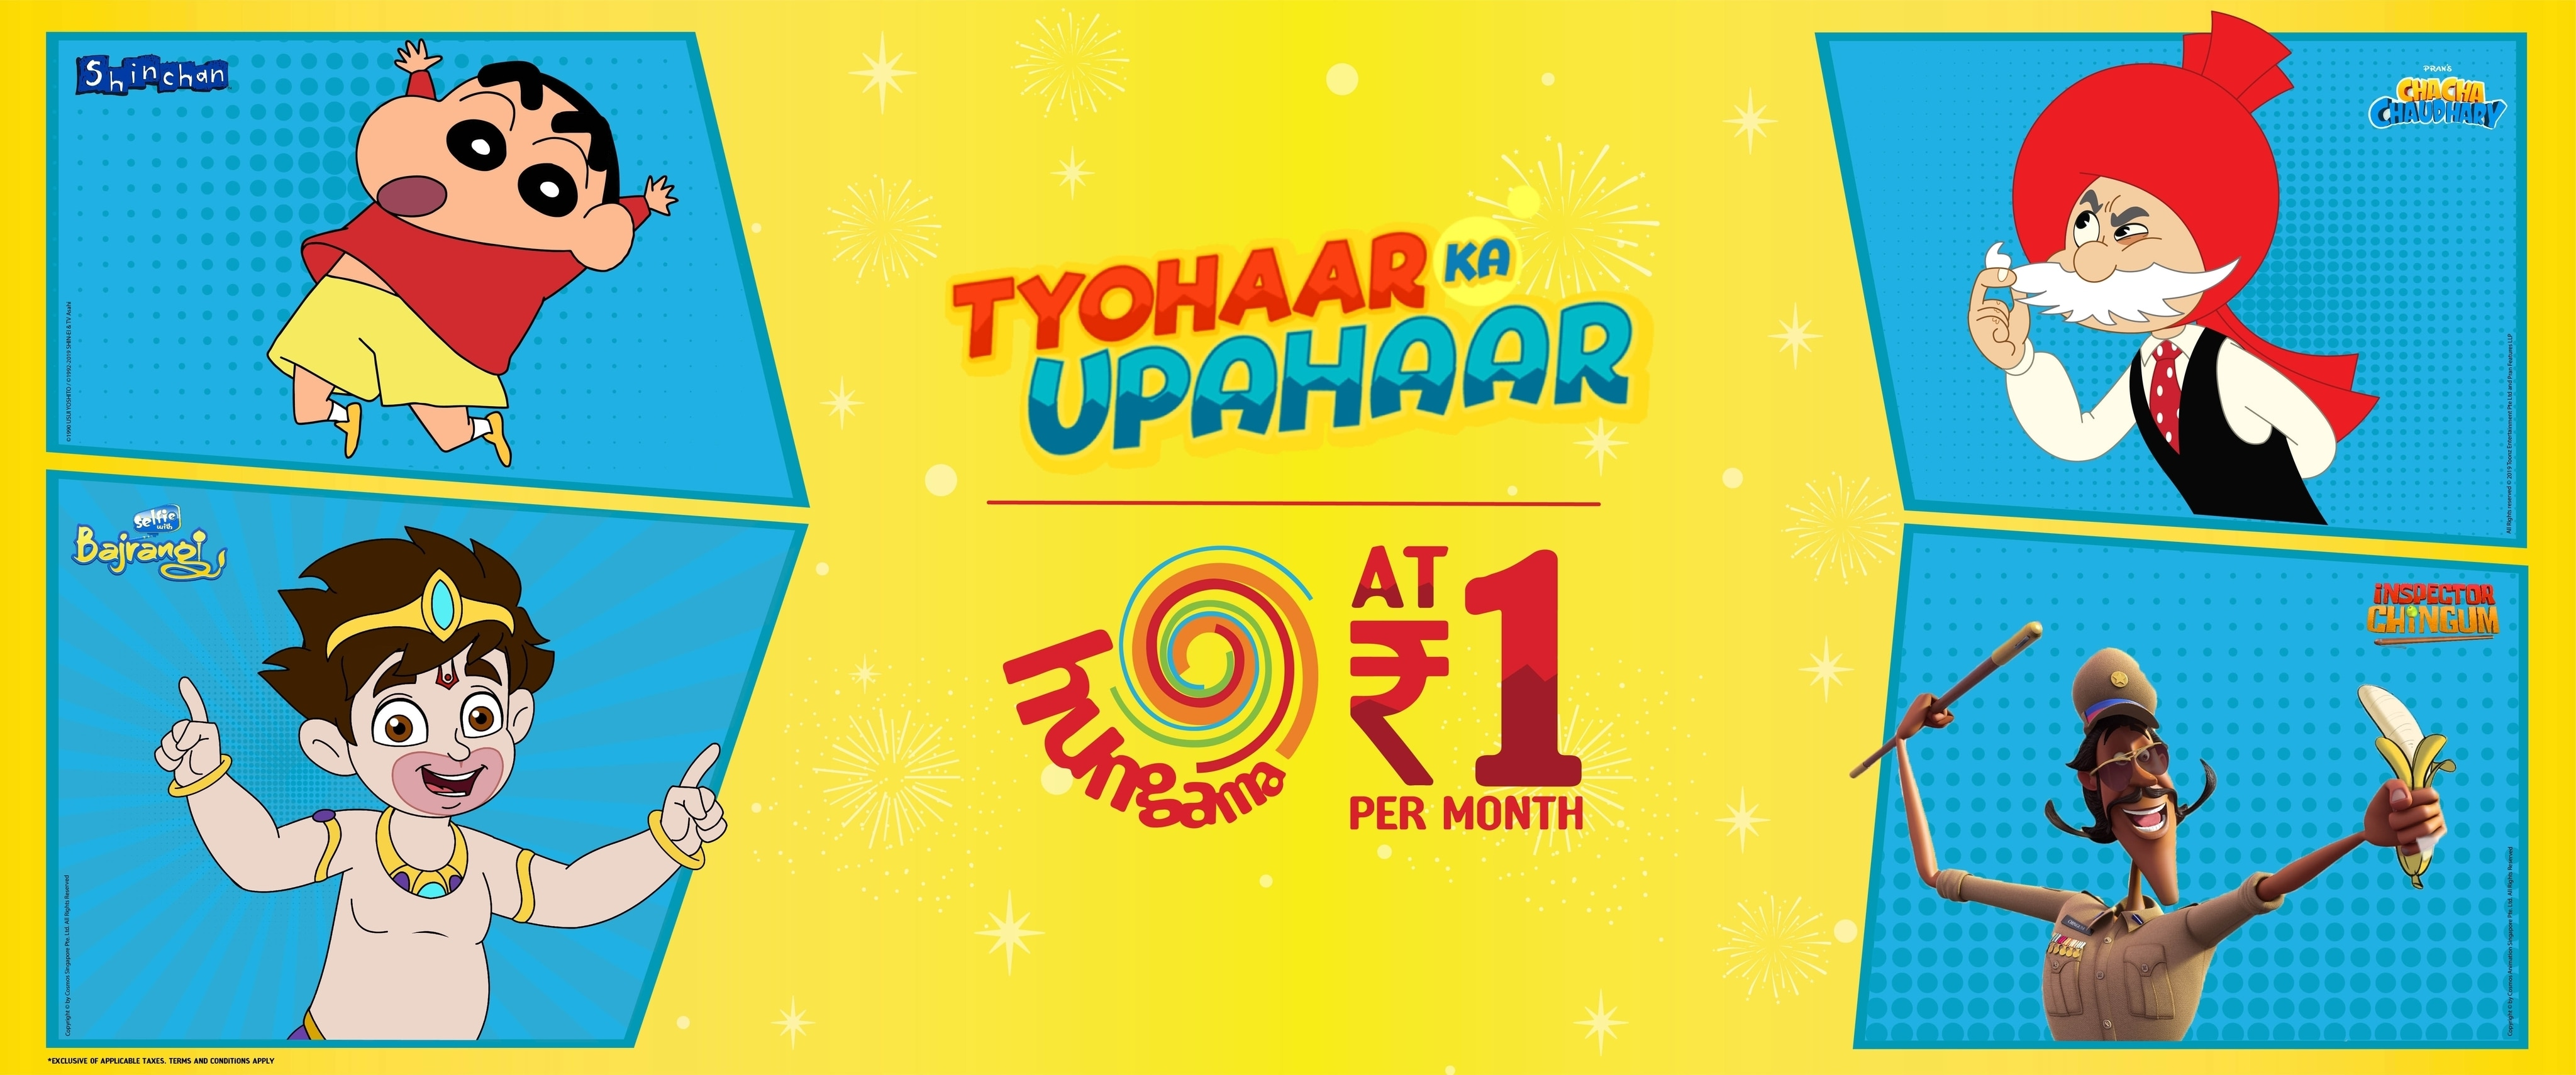 Disney Tyohar ka Uphar Pack Top | Channel Distributions Draft